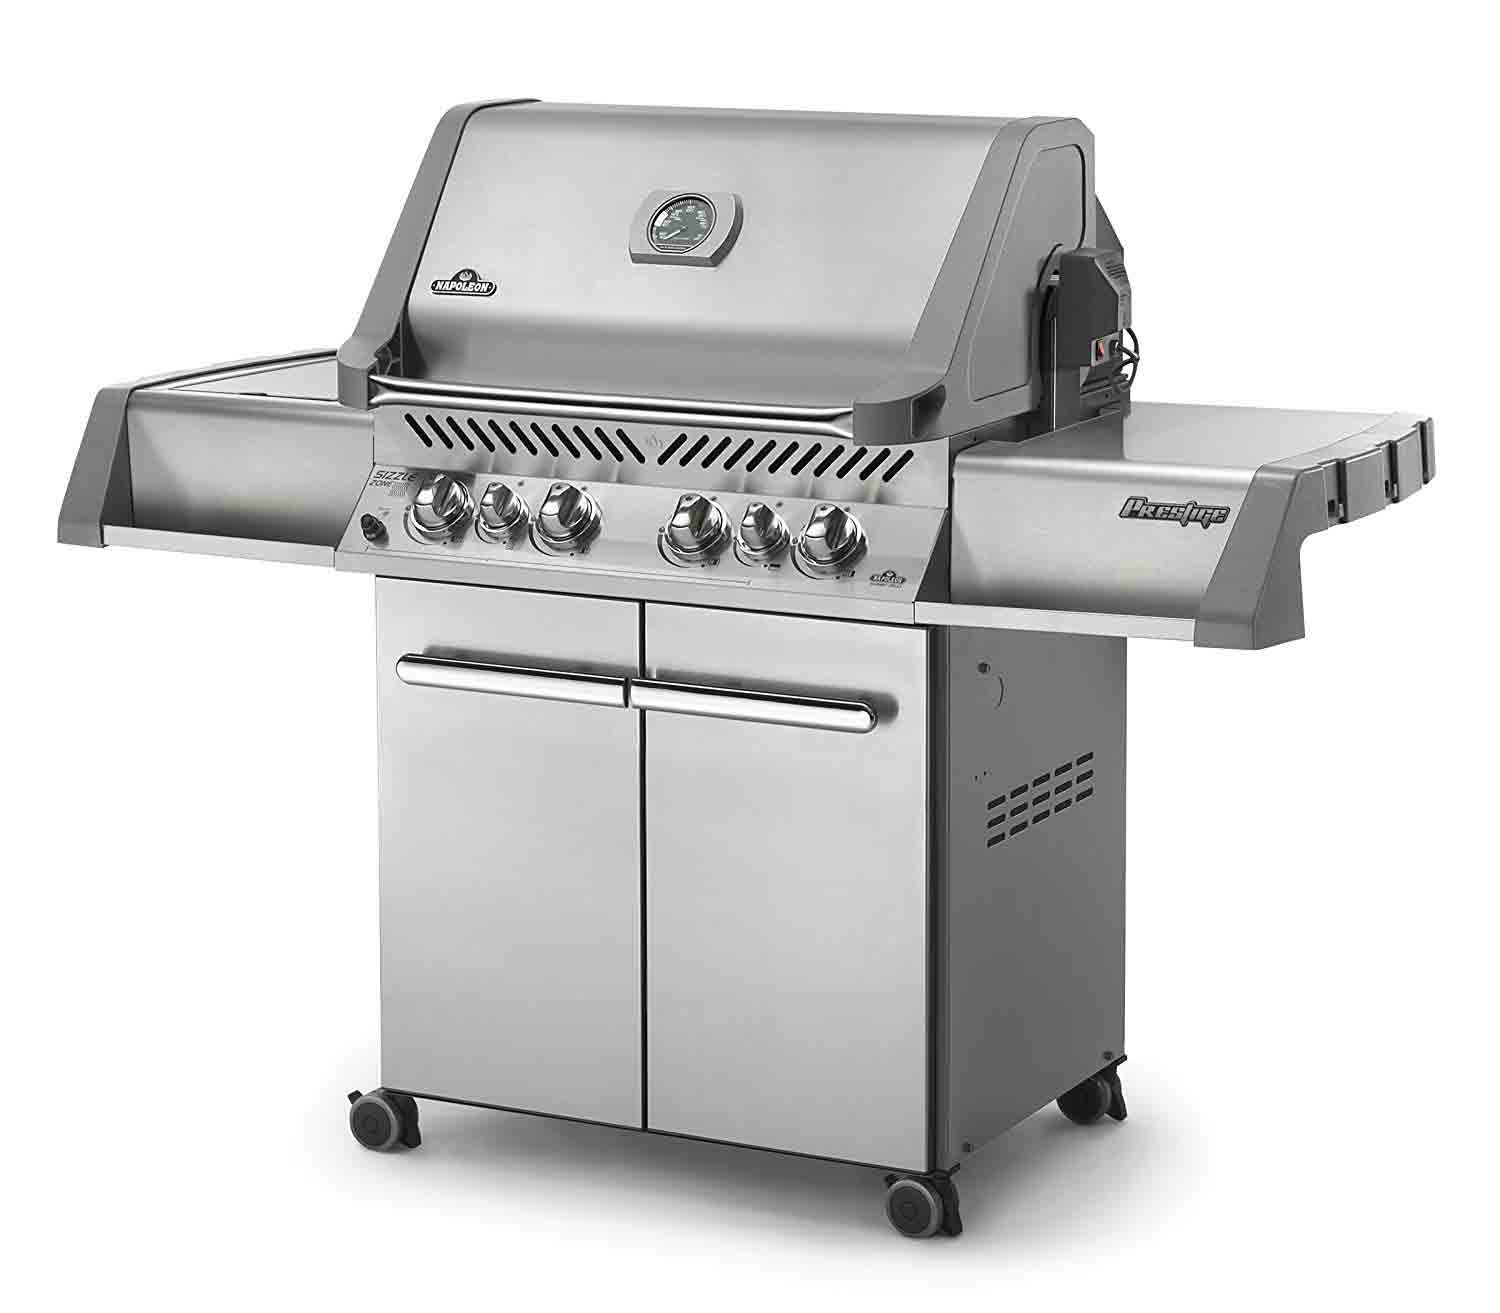 Top 10 Gas Grills Between $1 000 and $2 000 for 2017